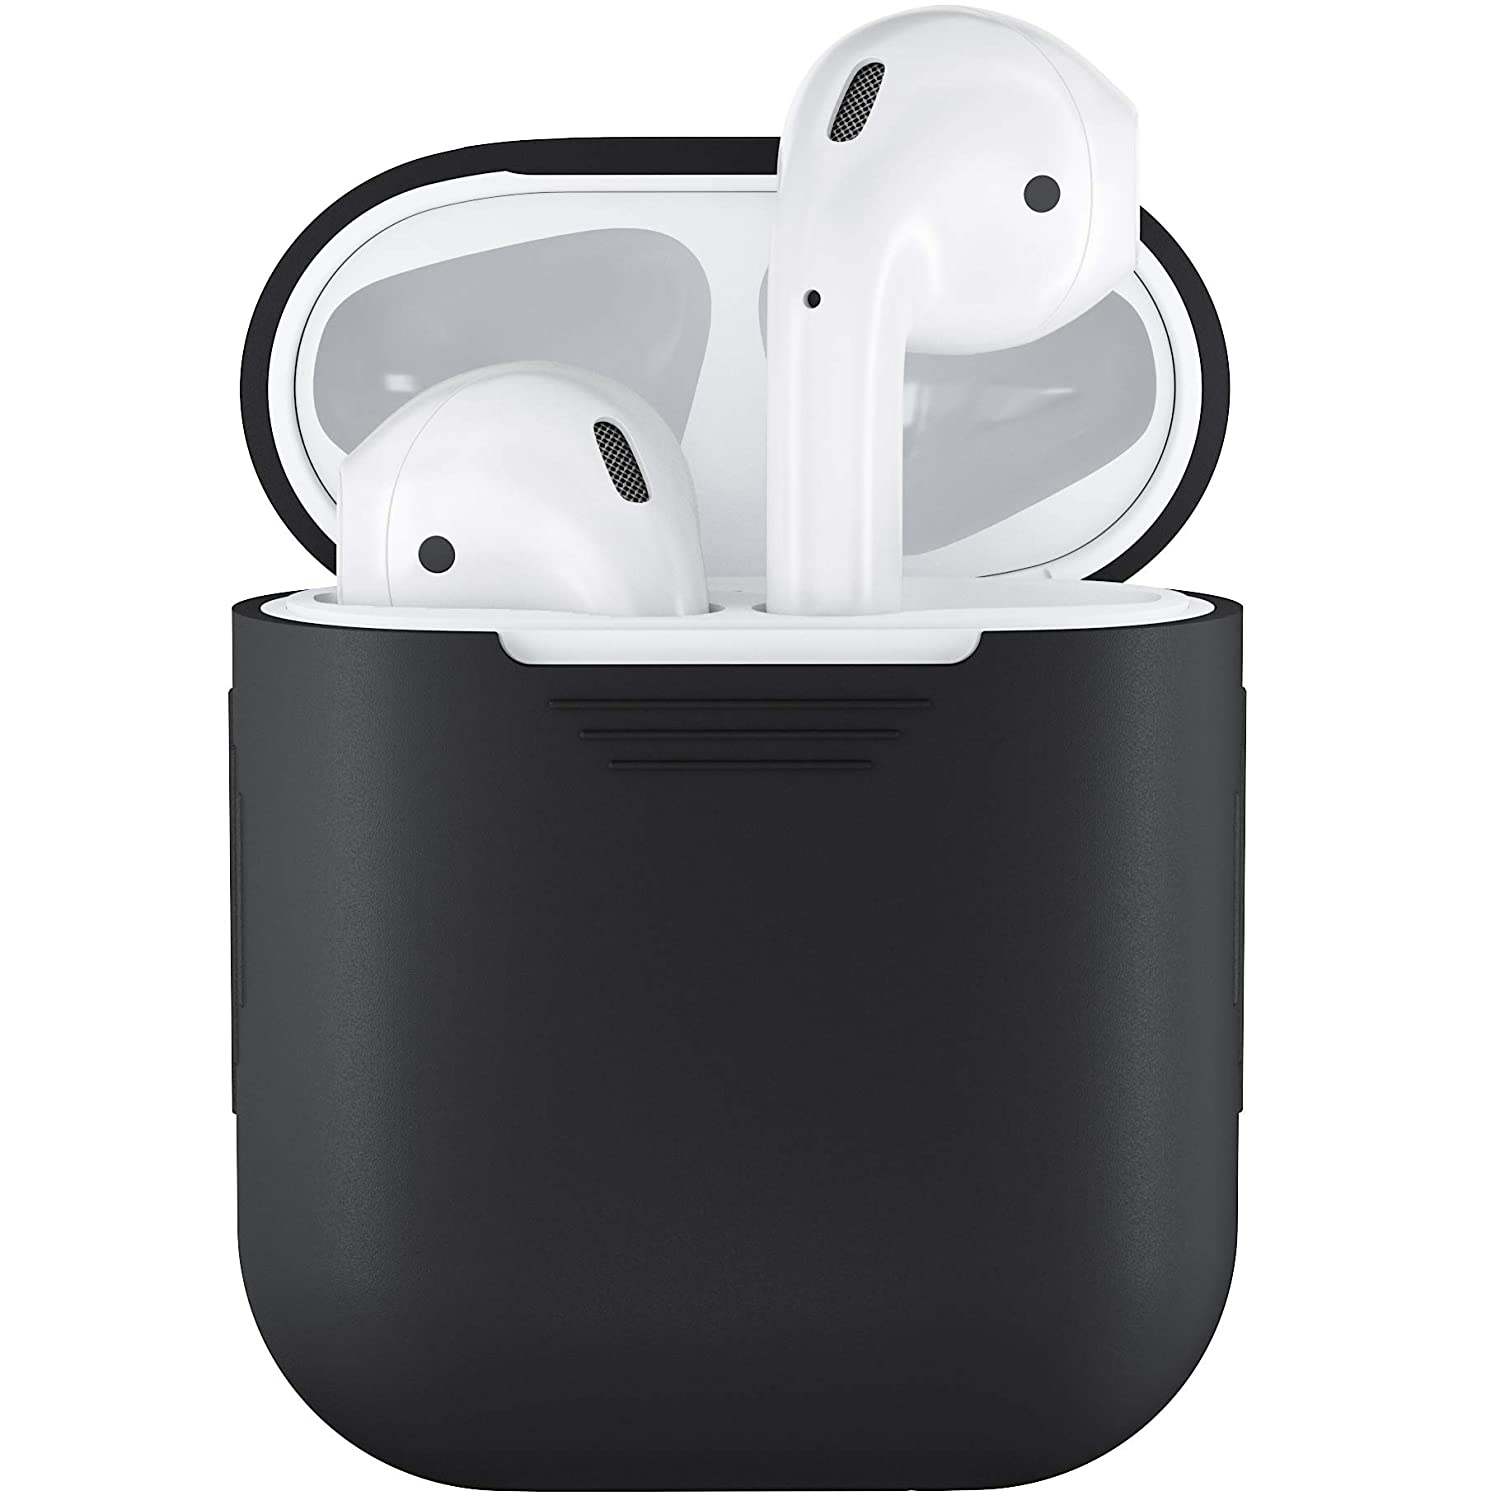 detailed look dbb82 cc9df PodSkinz AirPods Case Protective Silicone Cover and Skin Compatible with  Apple Airpods 1 & AirPods 2 [Front LED Not Visible] (Black)